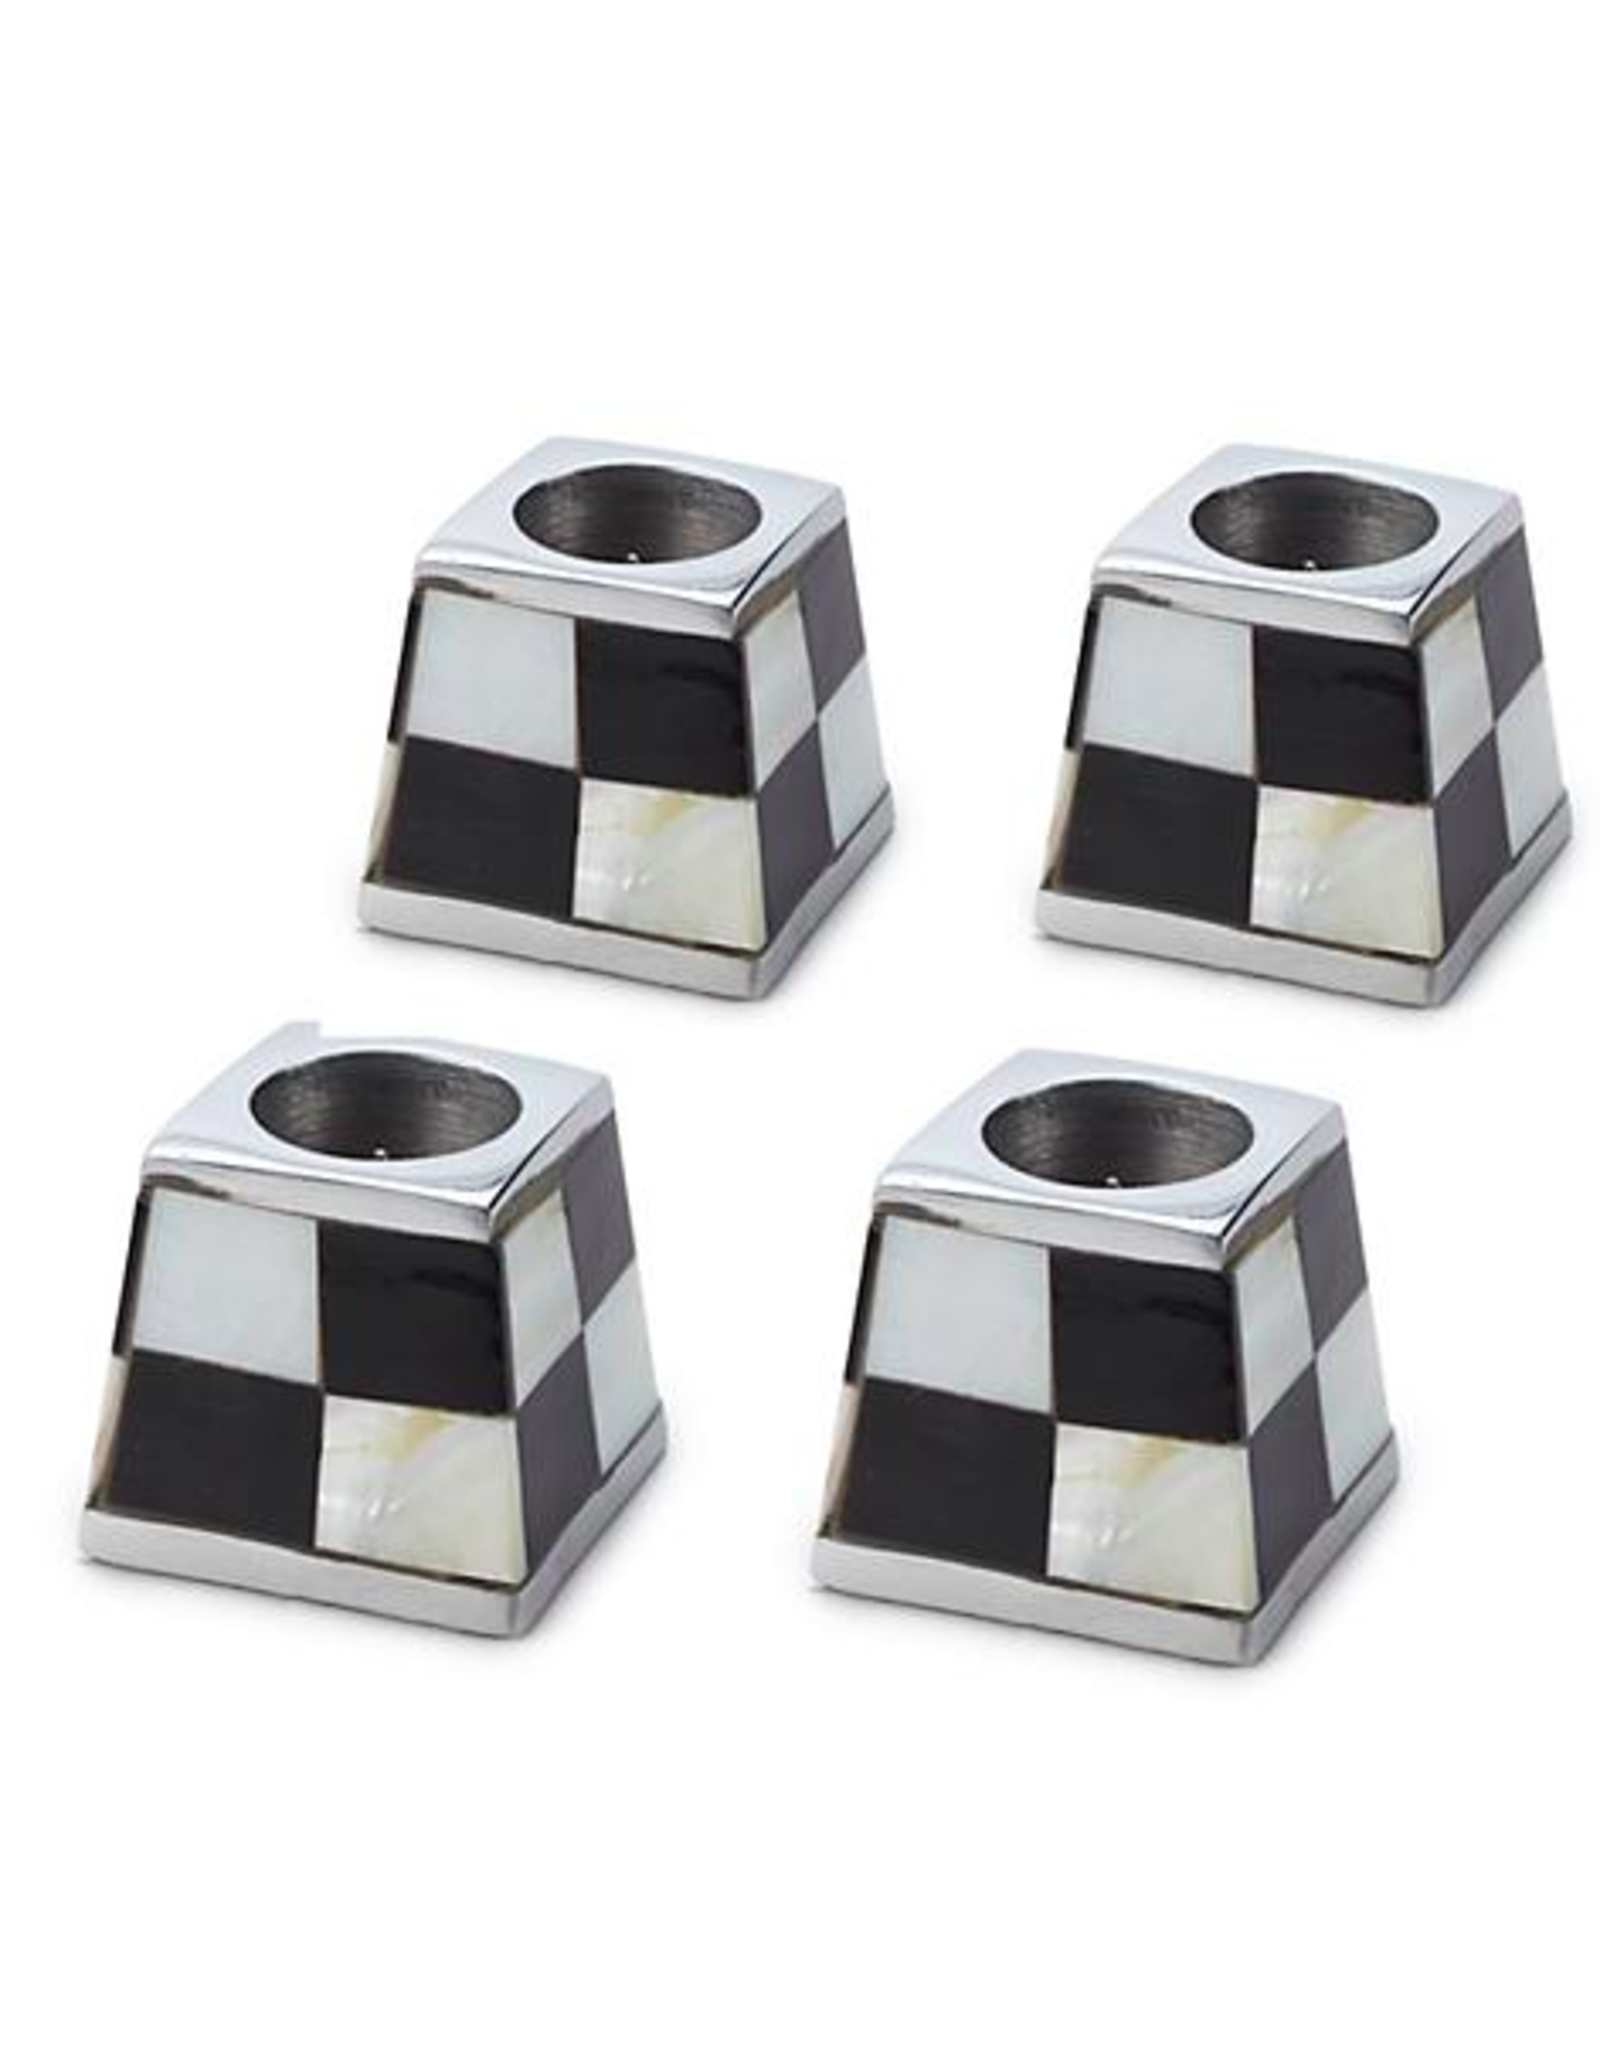 MacKenzie Childs Pyramid Candle Holders in White by MacKenzie-Childs